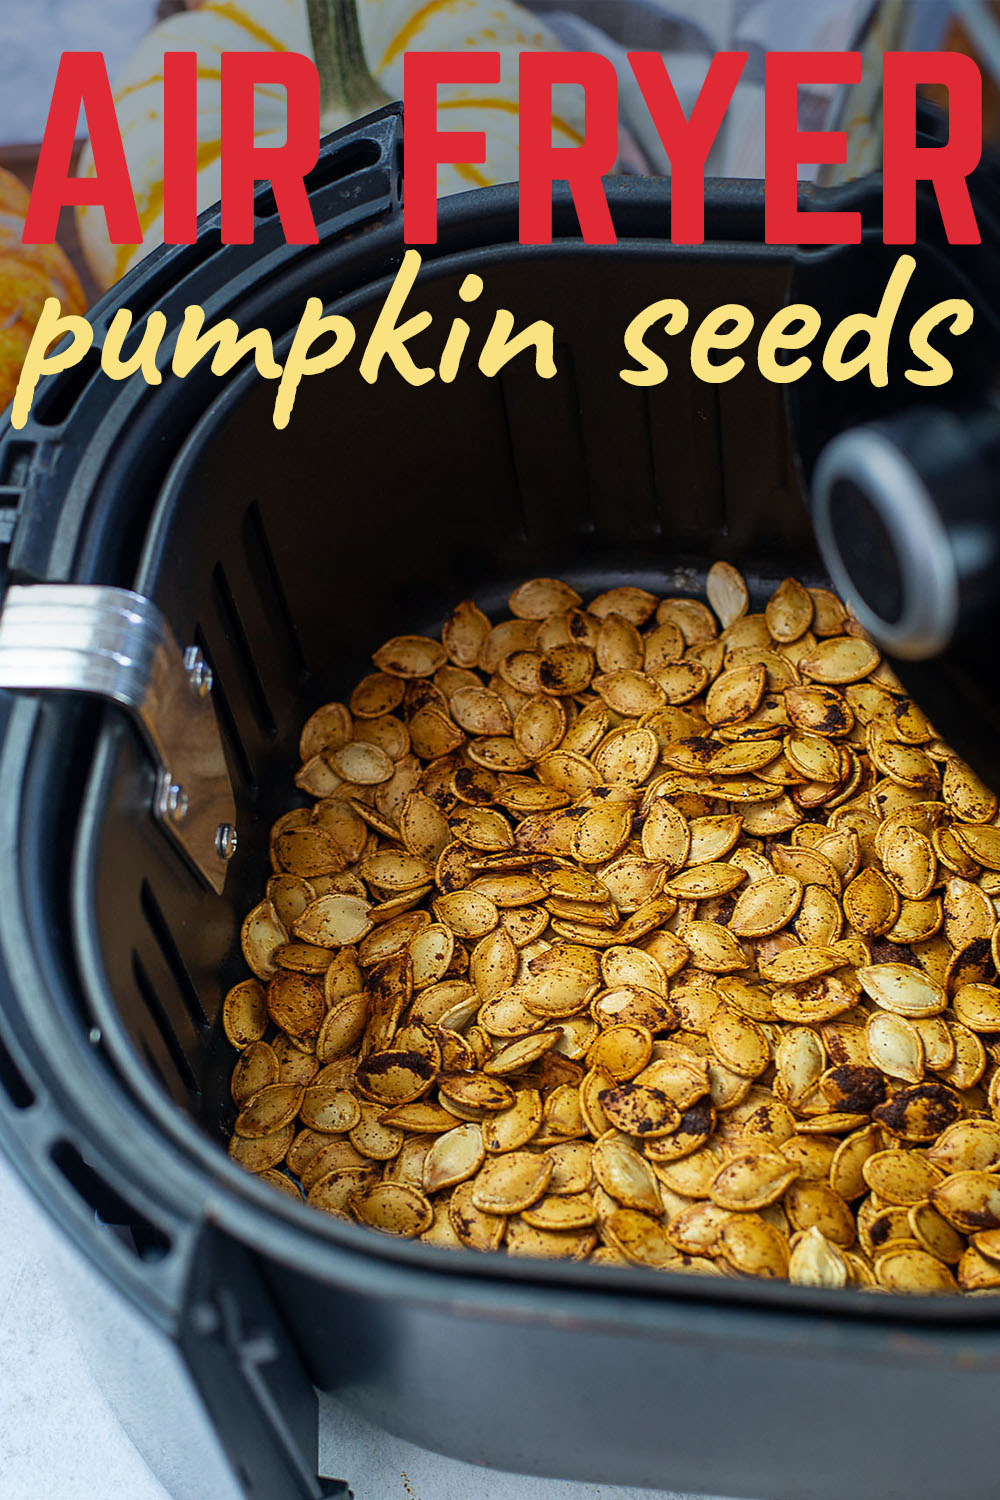 These easy to make pumpkin seeds are great any time, but they make you feel good too after a day of pumpkin carving!